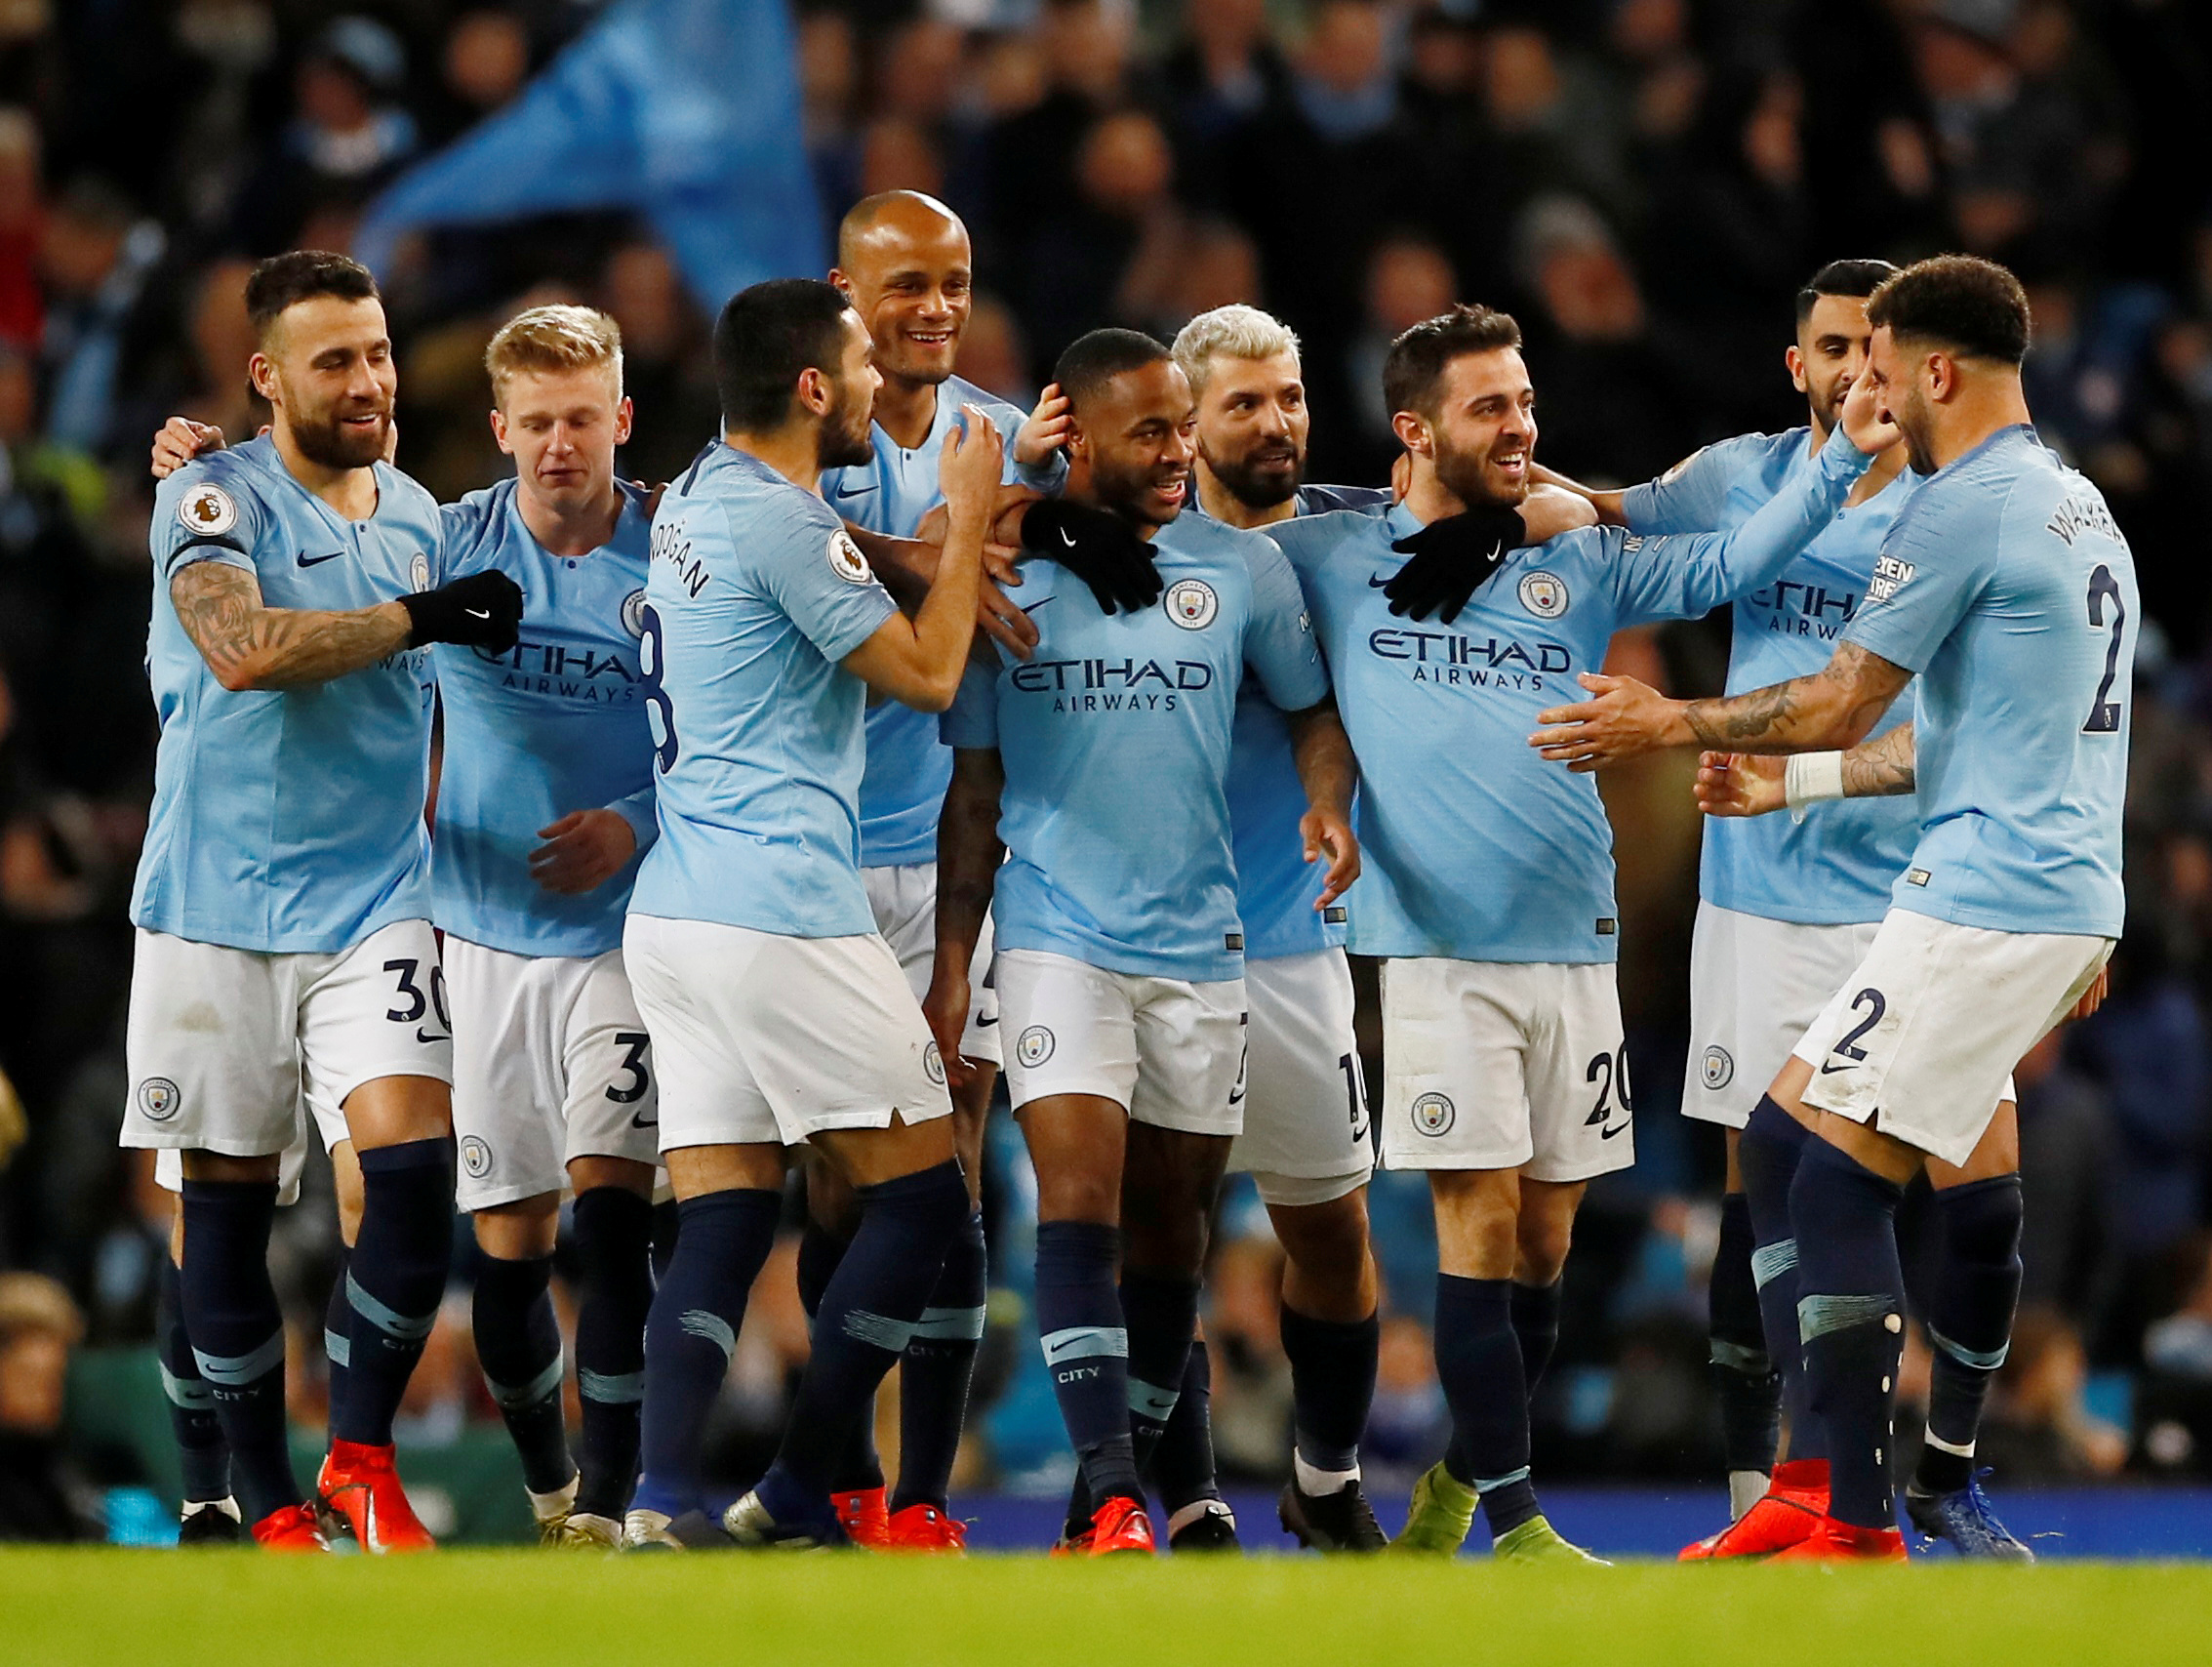 Manchester City Games 2019